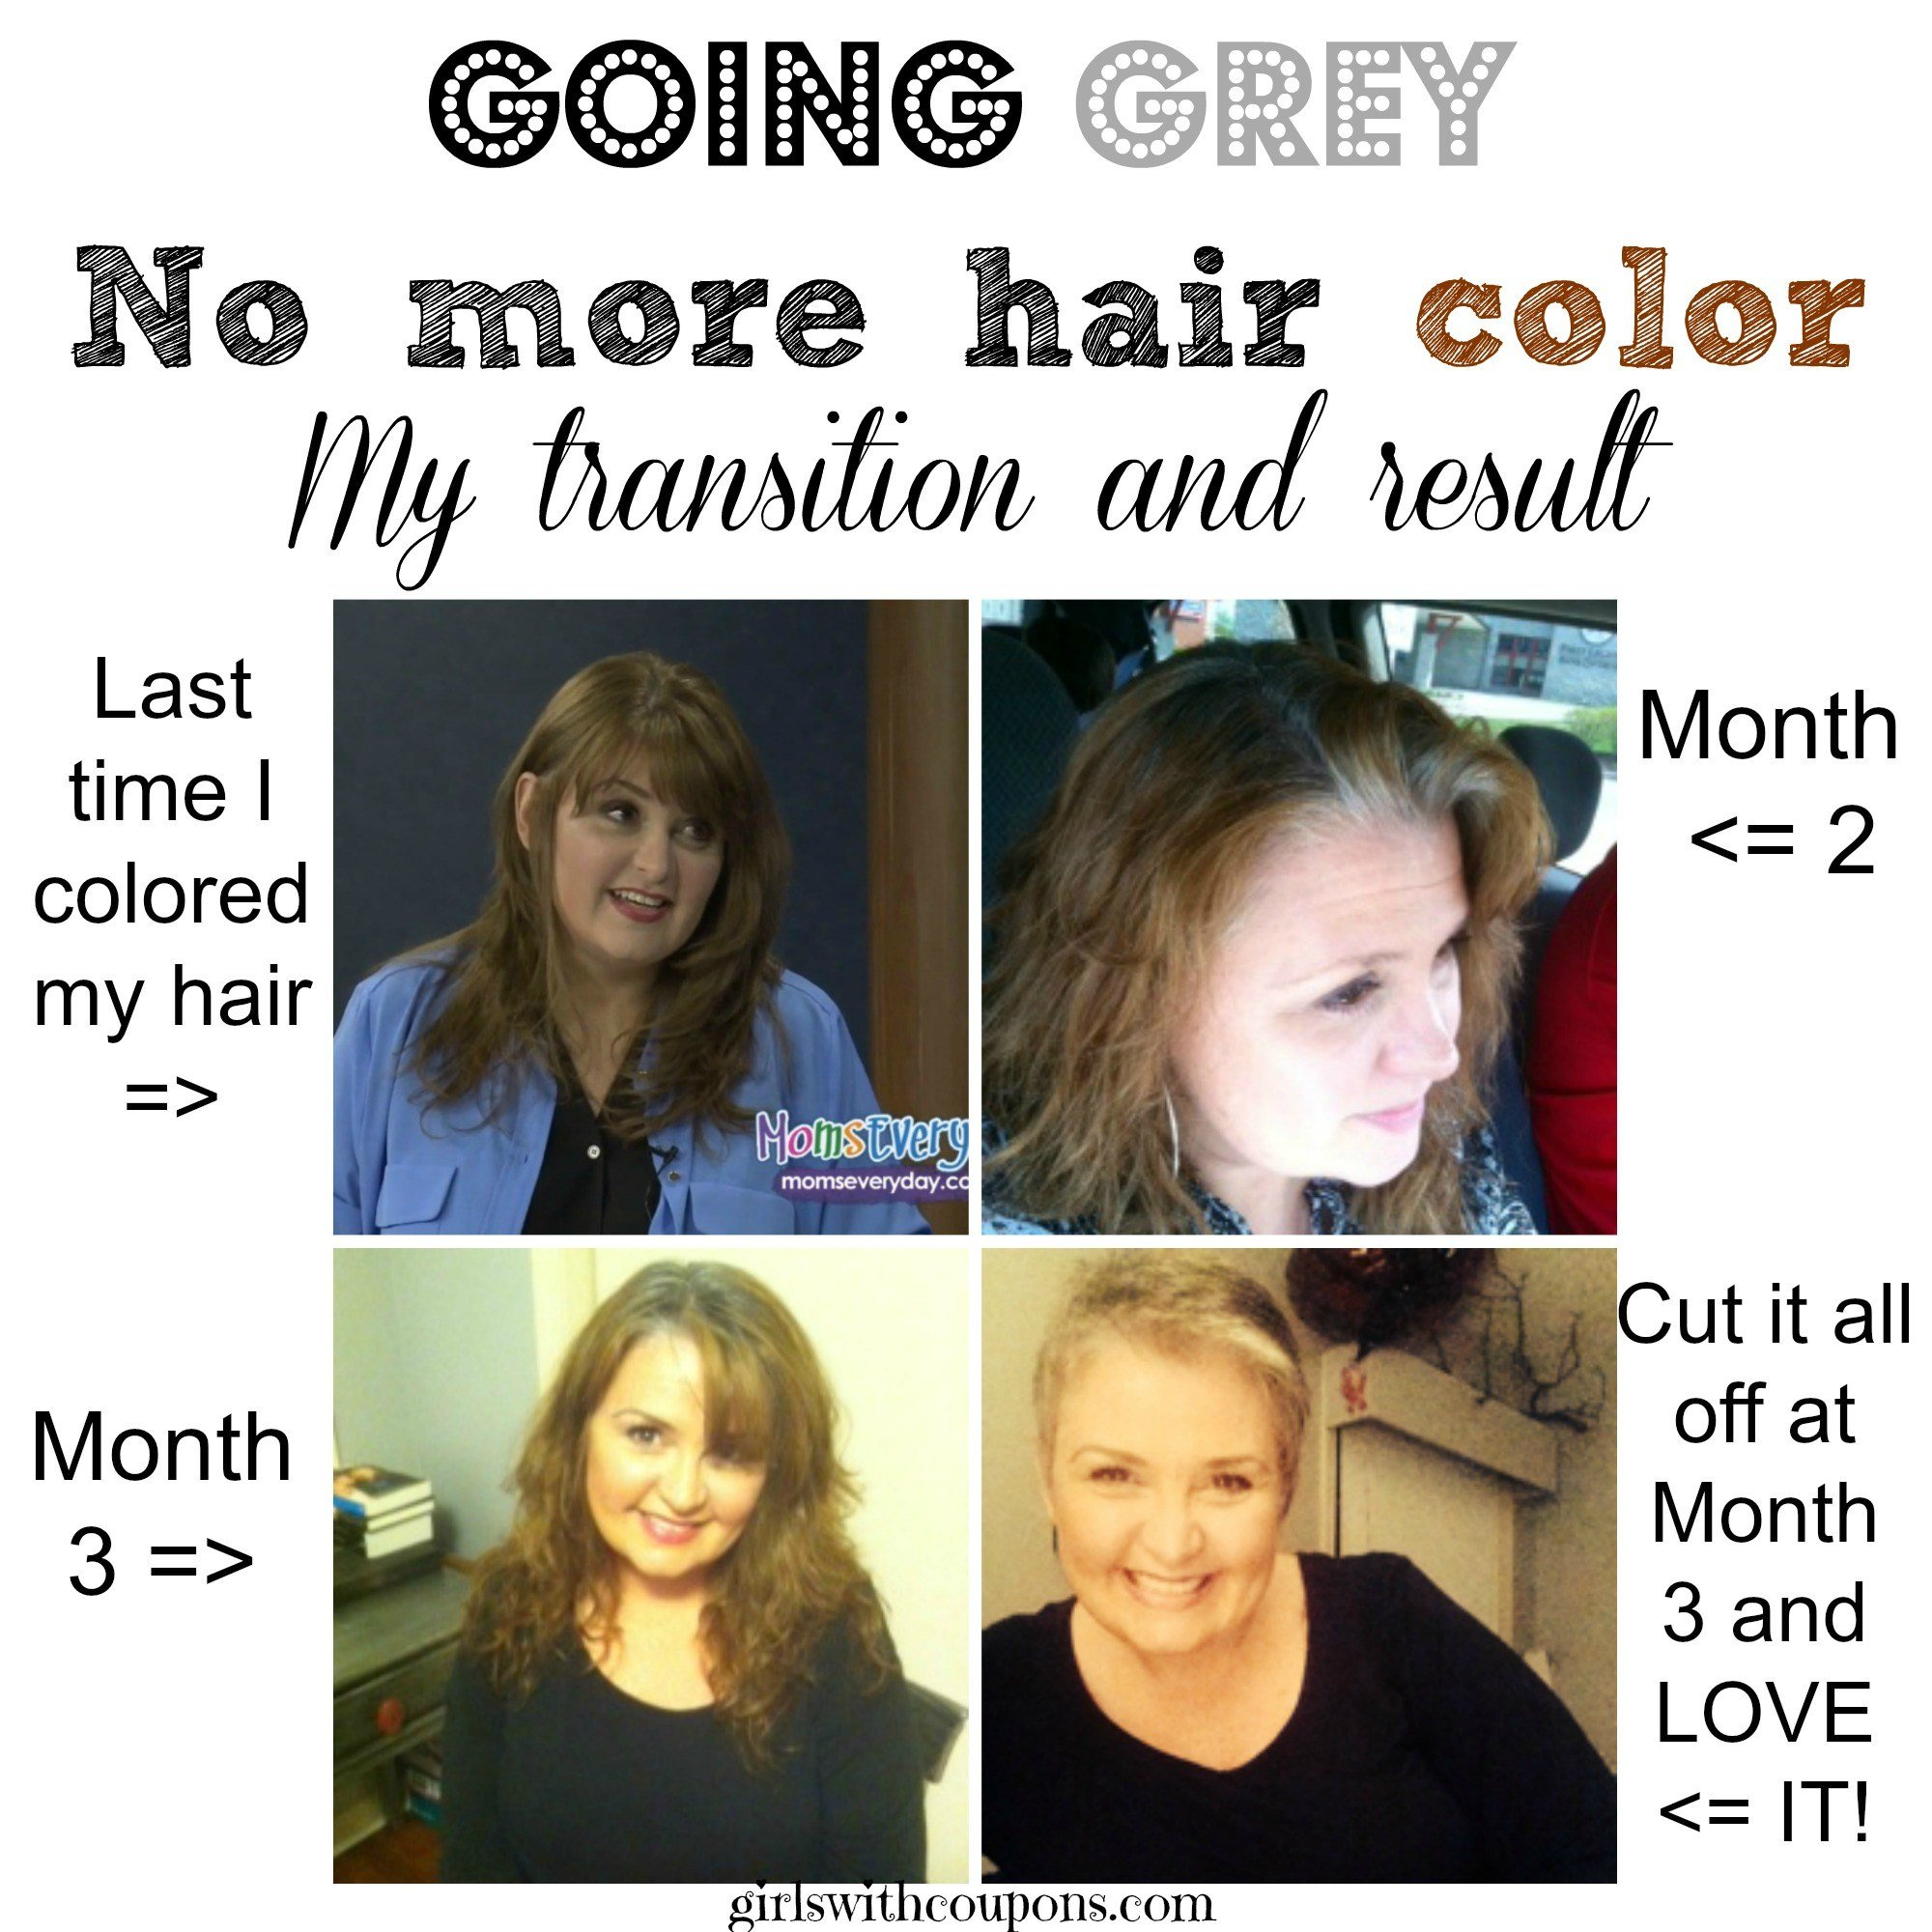 The Best Going Gray Nomorehaircolor My Transition The Cutting Pictures